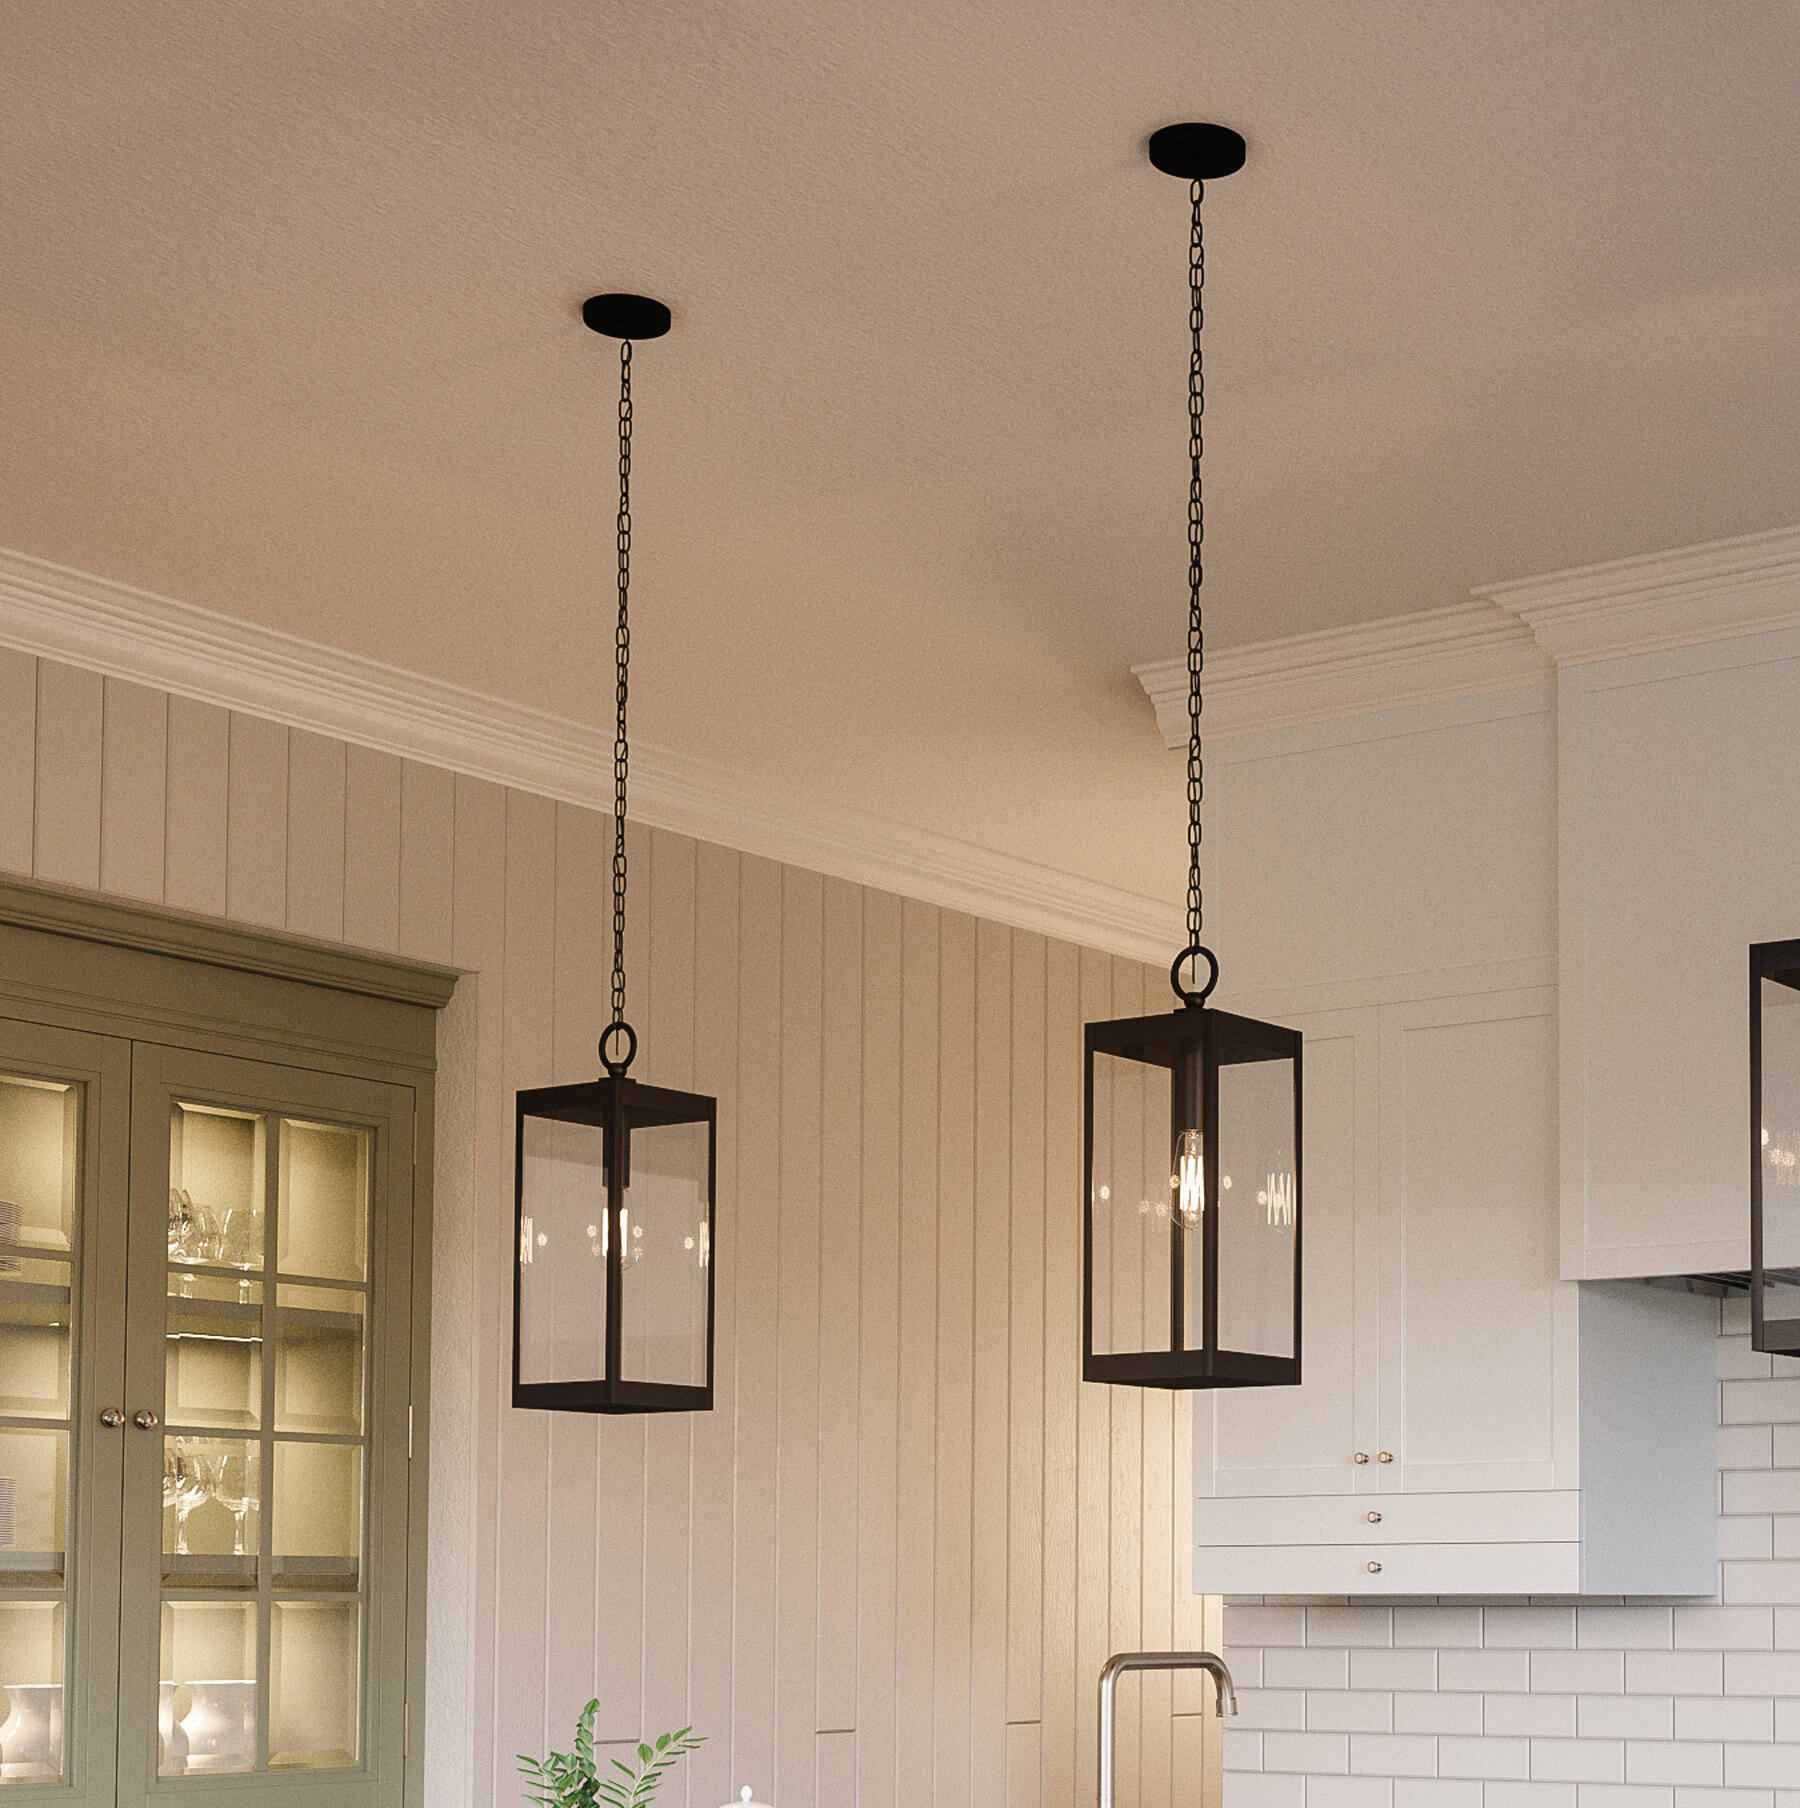 Details about gracie oaks viles 1 light outdoor hanging lantern